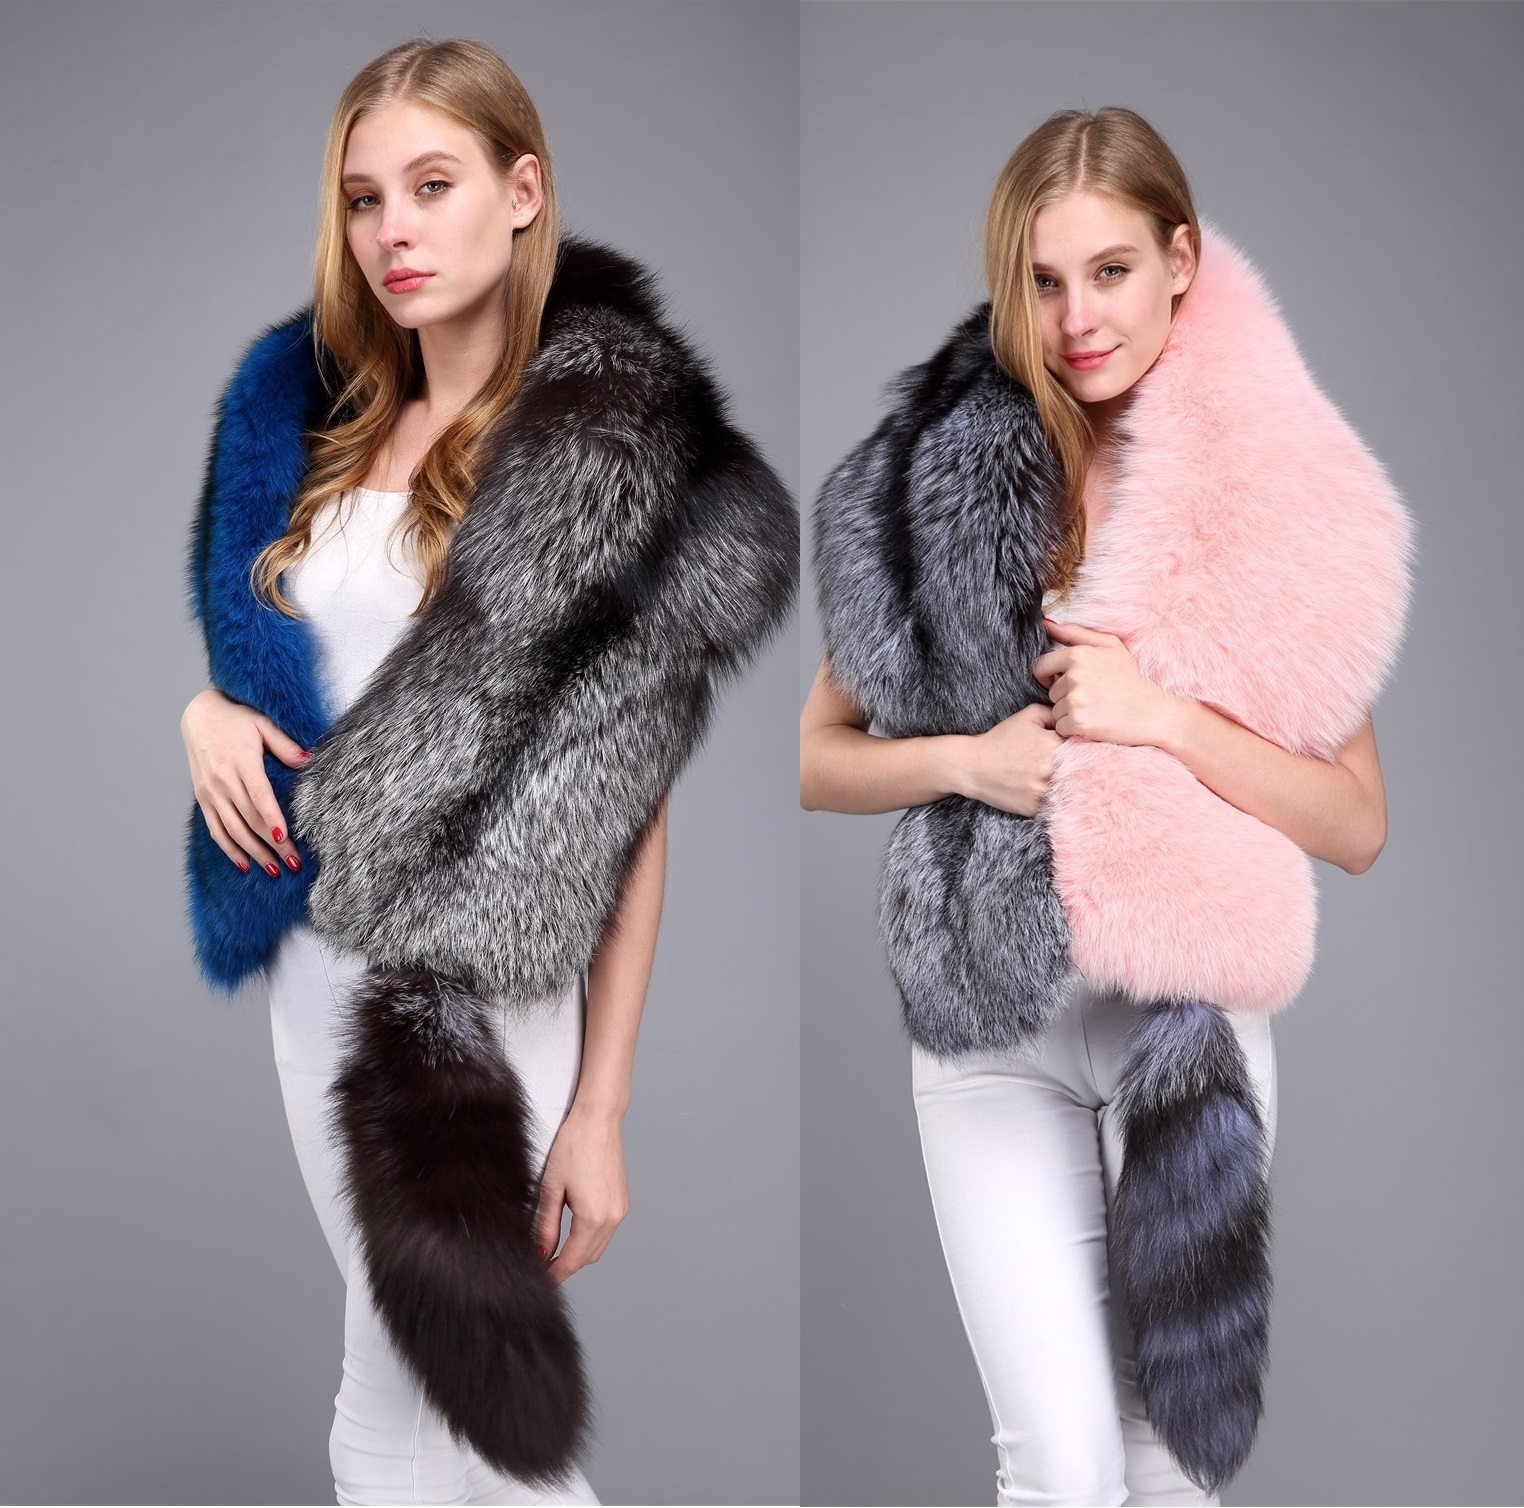 WT-039 New Fashion Women's Clothes Ladies Furry Scarf High imitation mink fur shawl cloak bride Scarves & Wraps